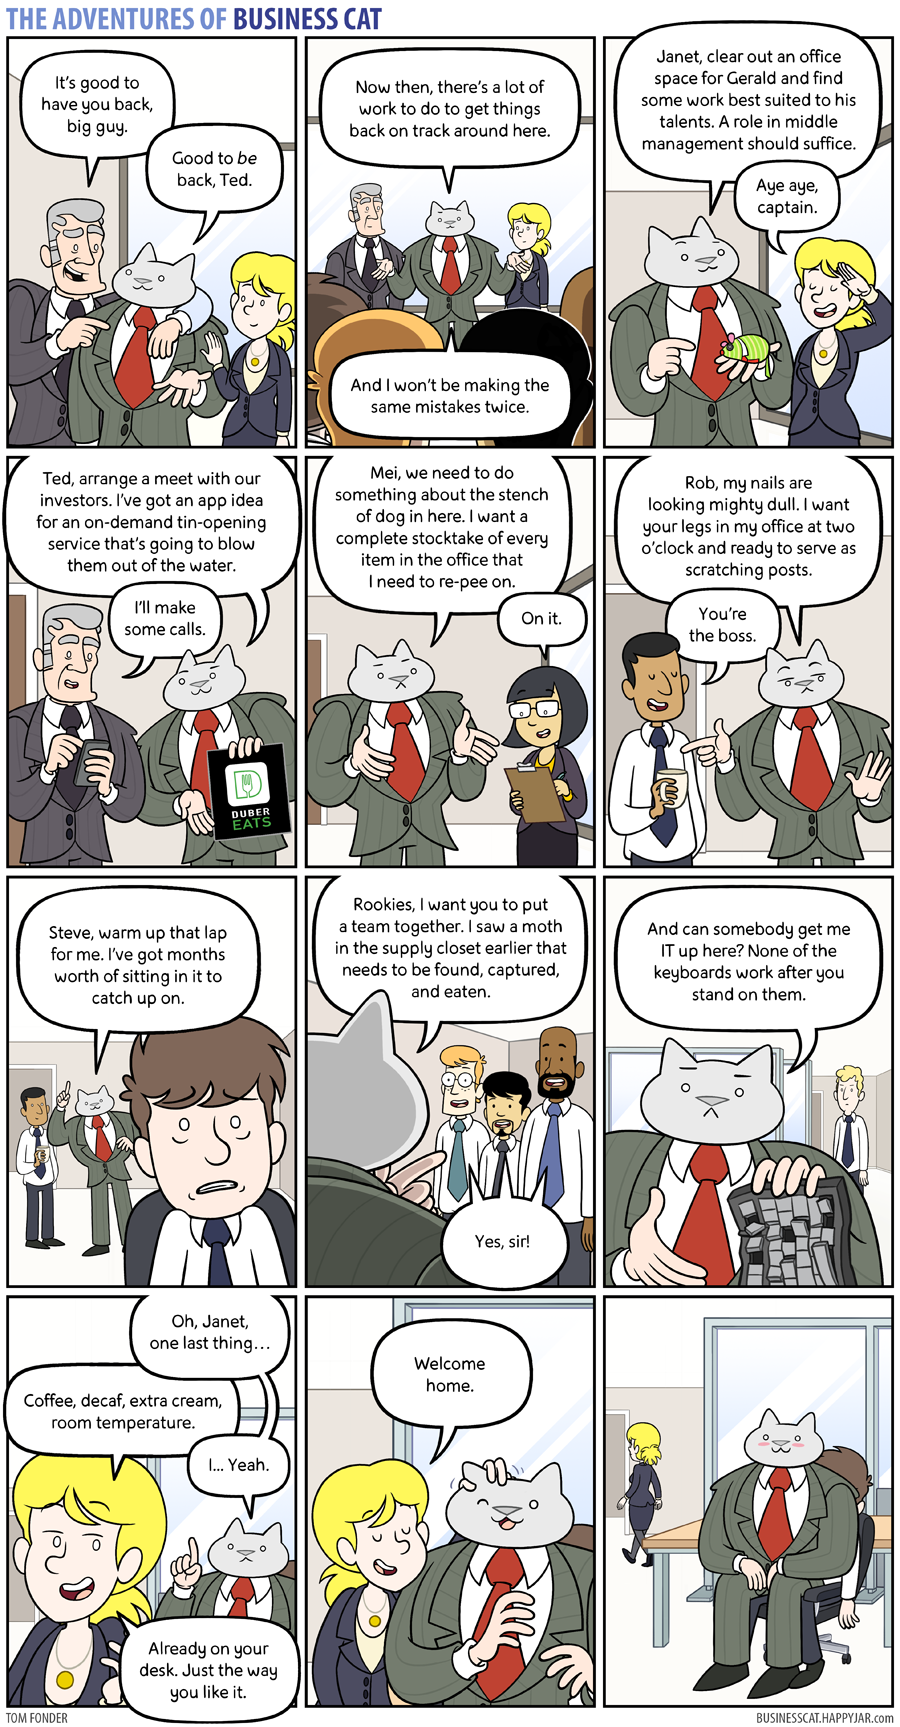 The Adventures of Business Cat - Business